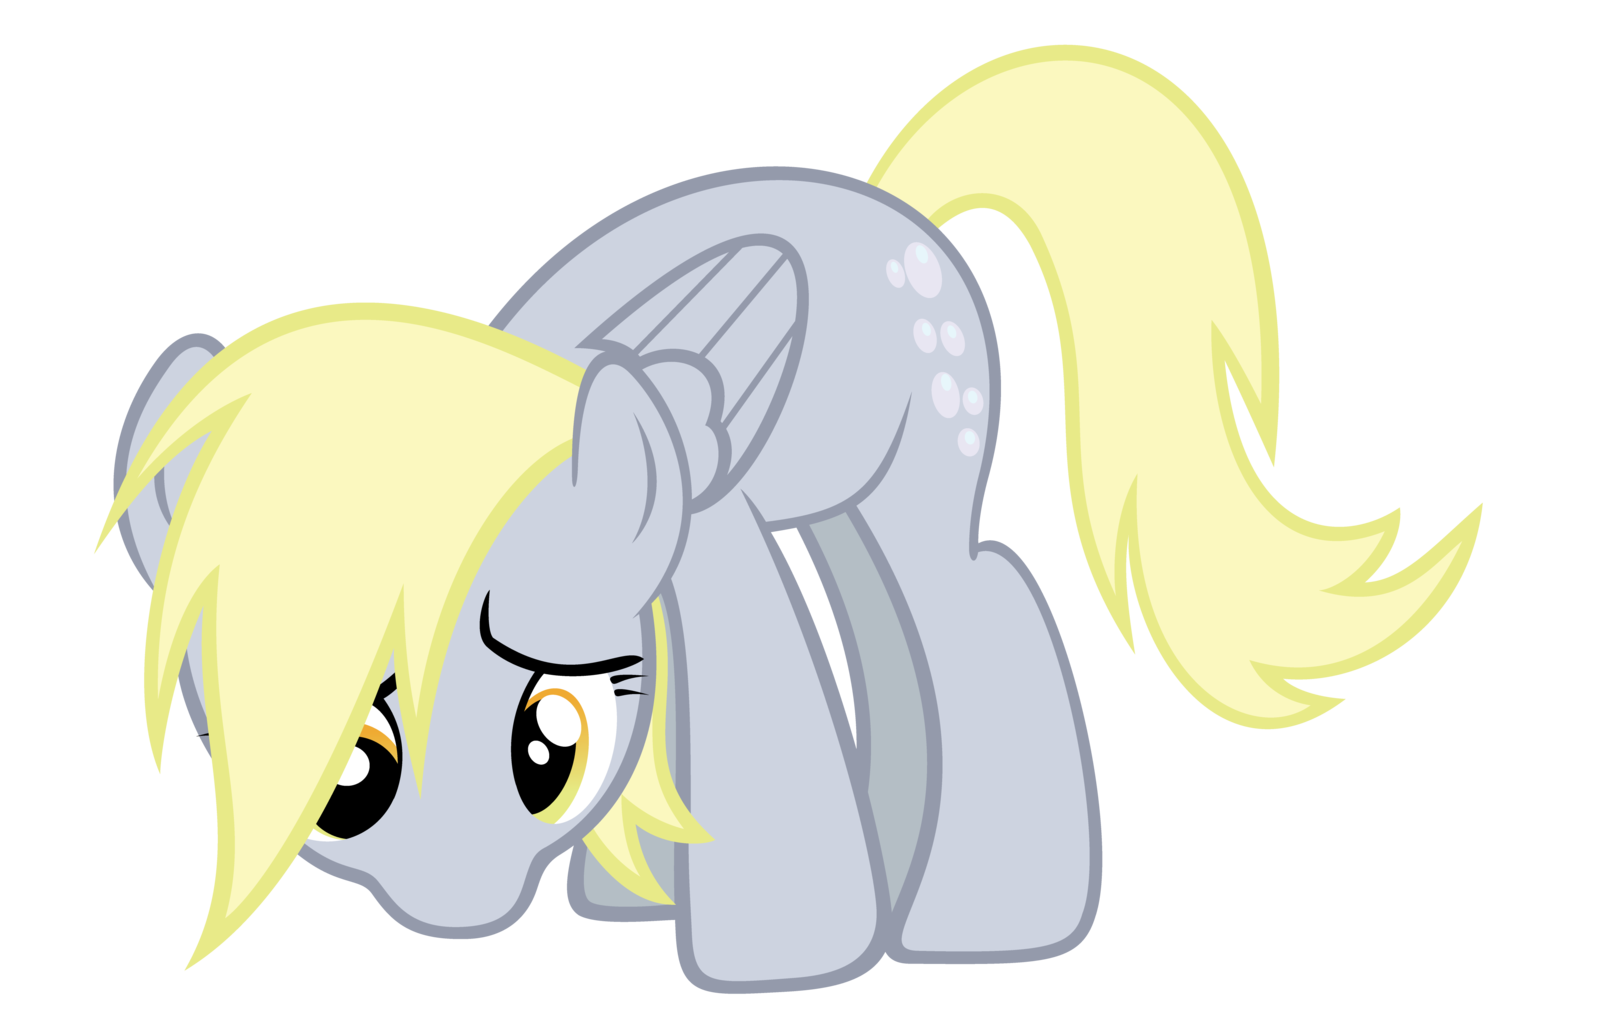 derpy   sad by cptofthefriendship-d4no13